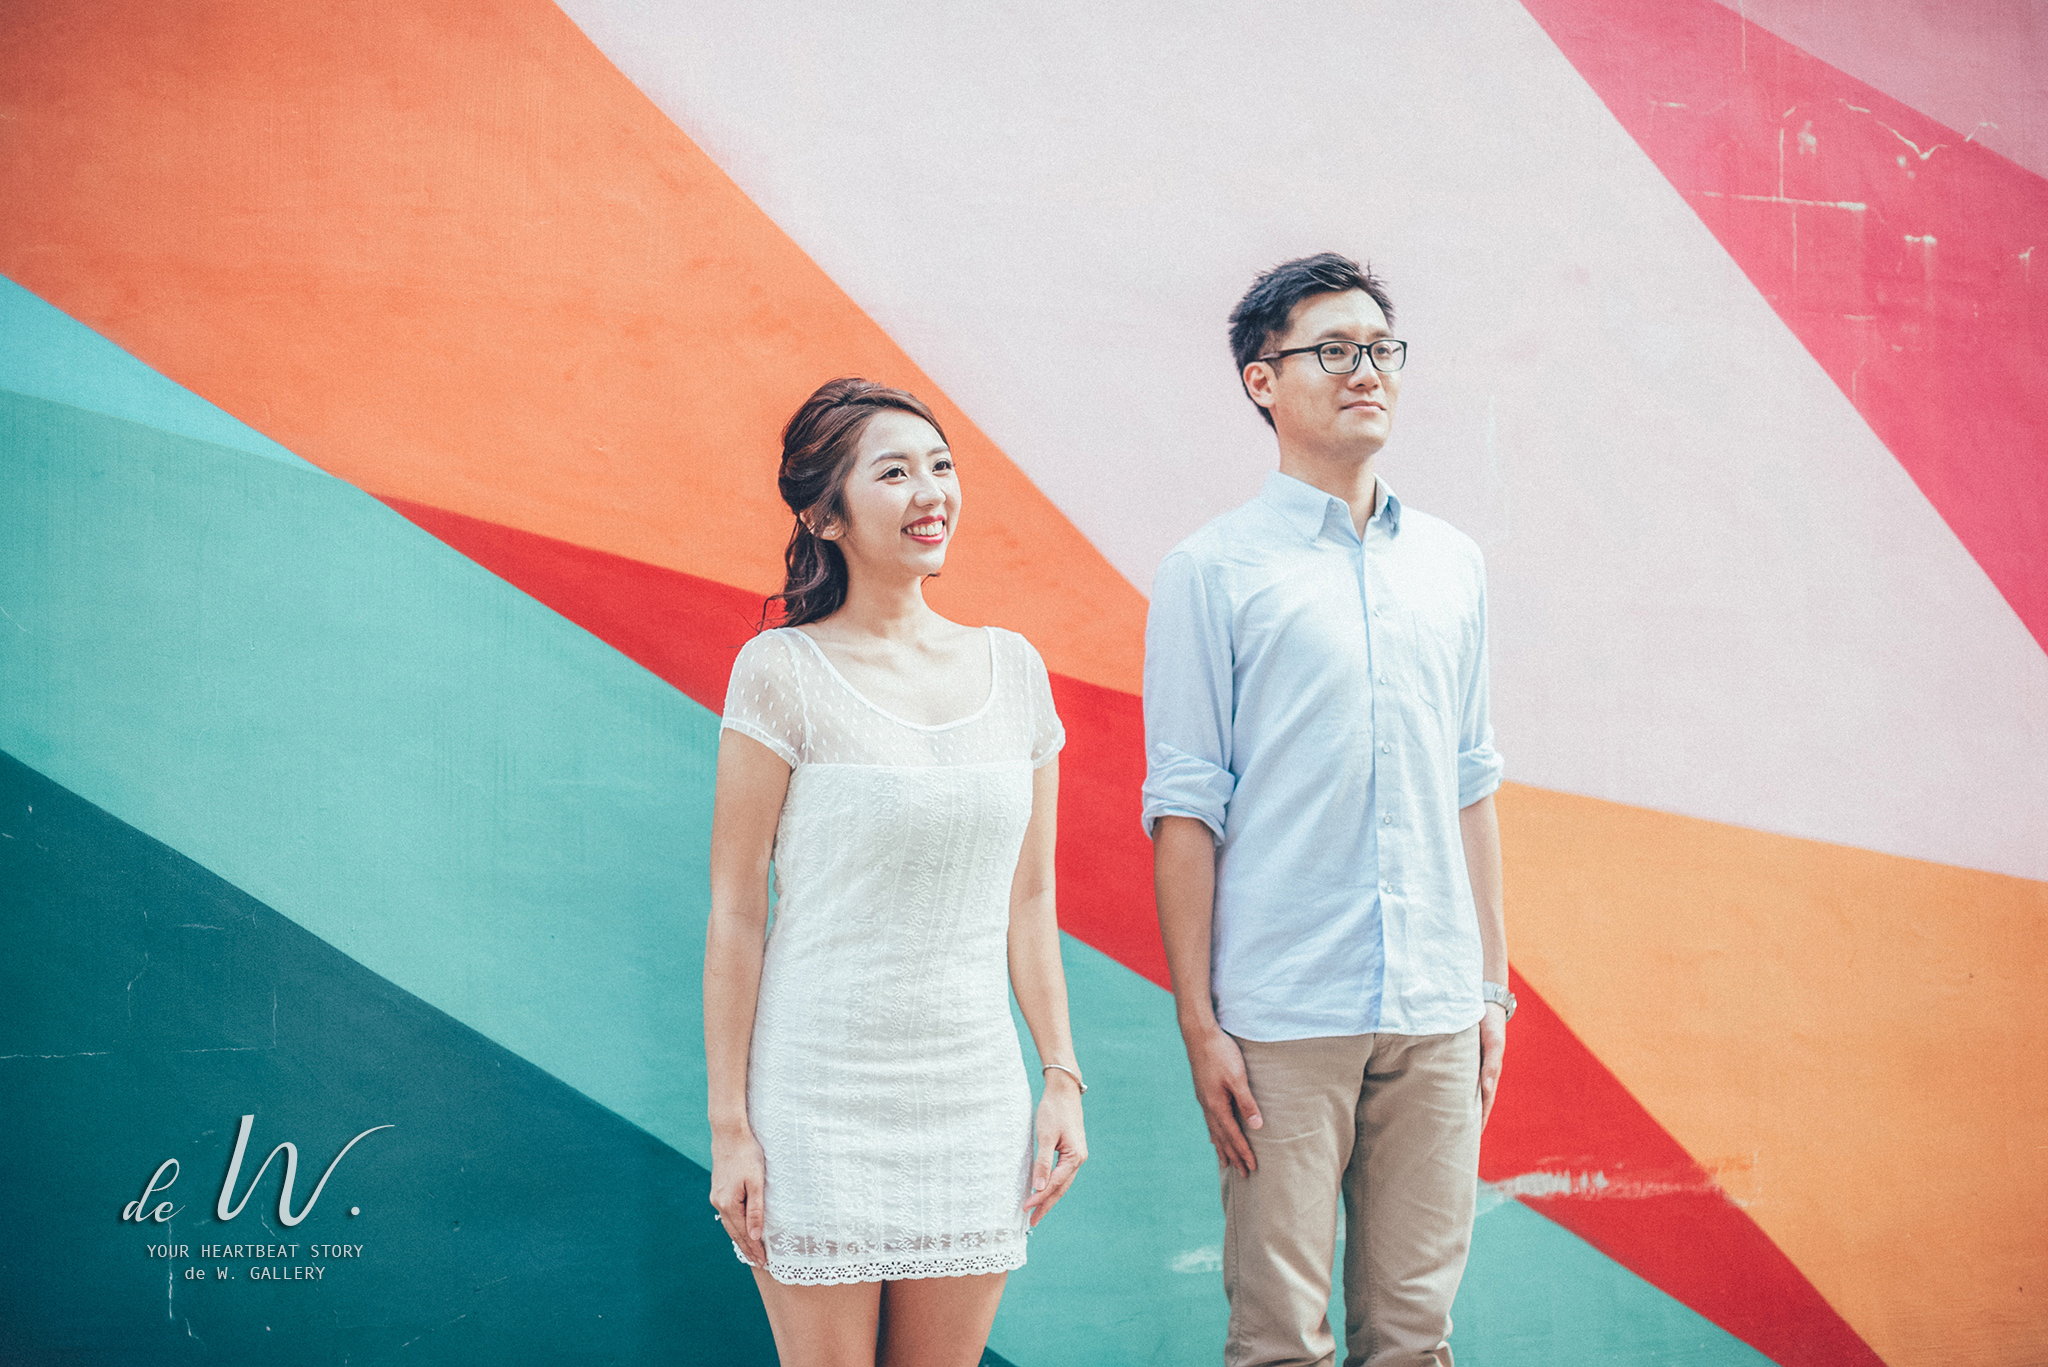 2048 de w gallery Film style hong kong 底片 拍拖 engagement vsco 故事 中環 西環 central-15